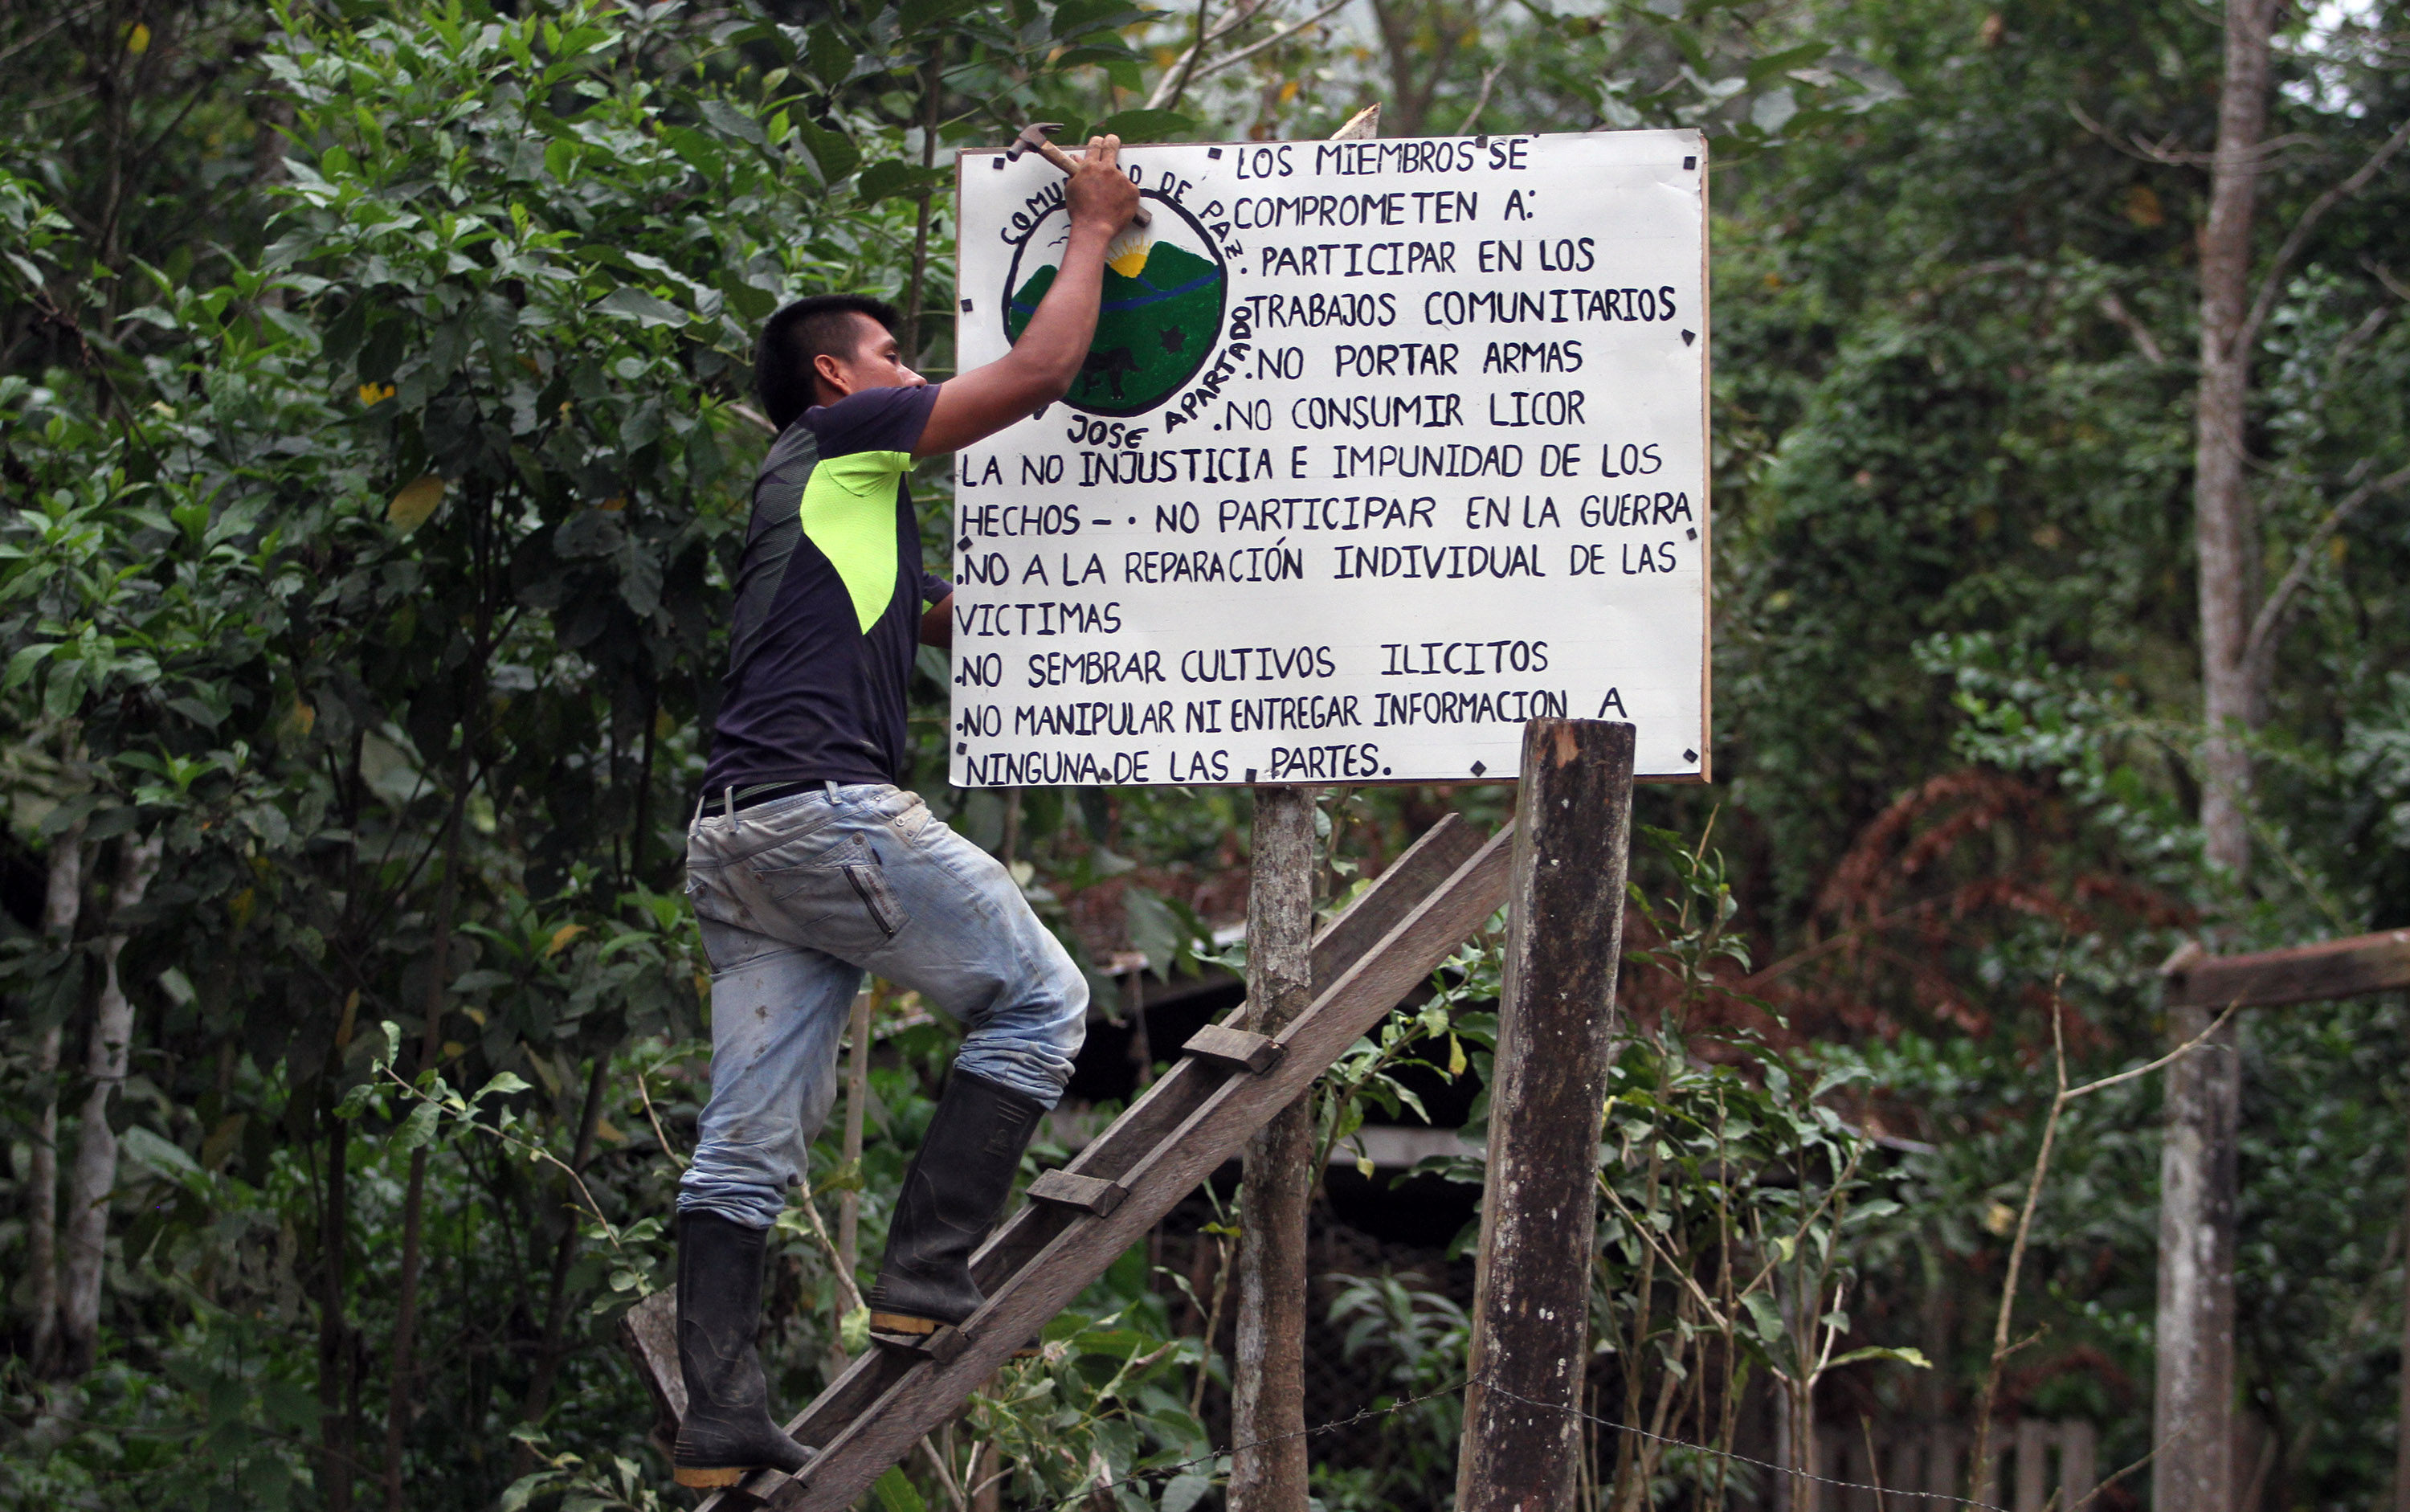 Germán, a community leader, hanging sign of community rules in preparation for 19th anniversary celebration